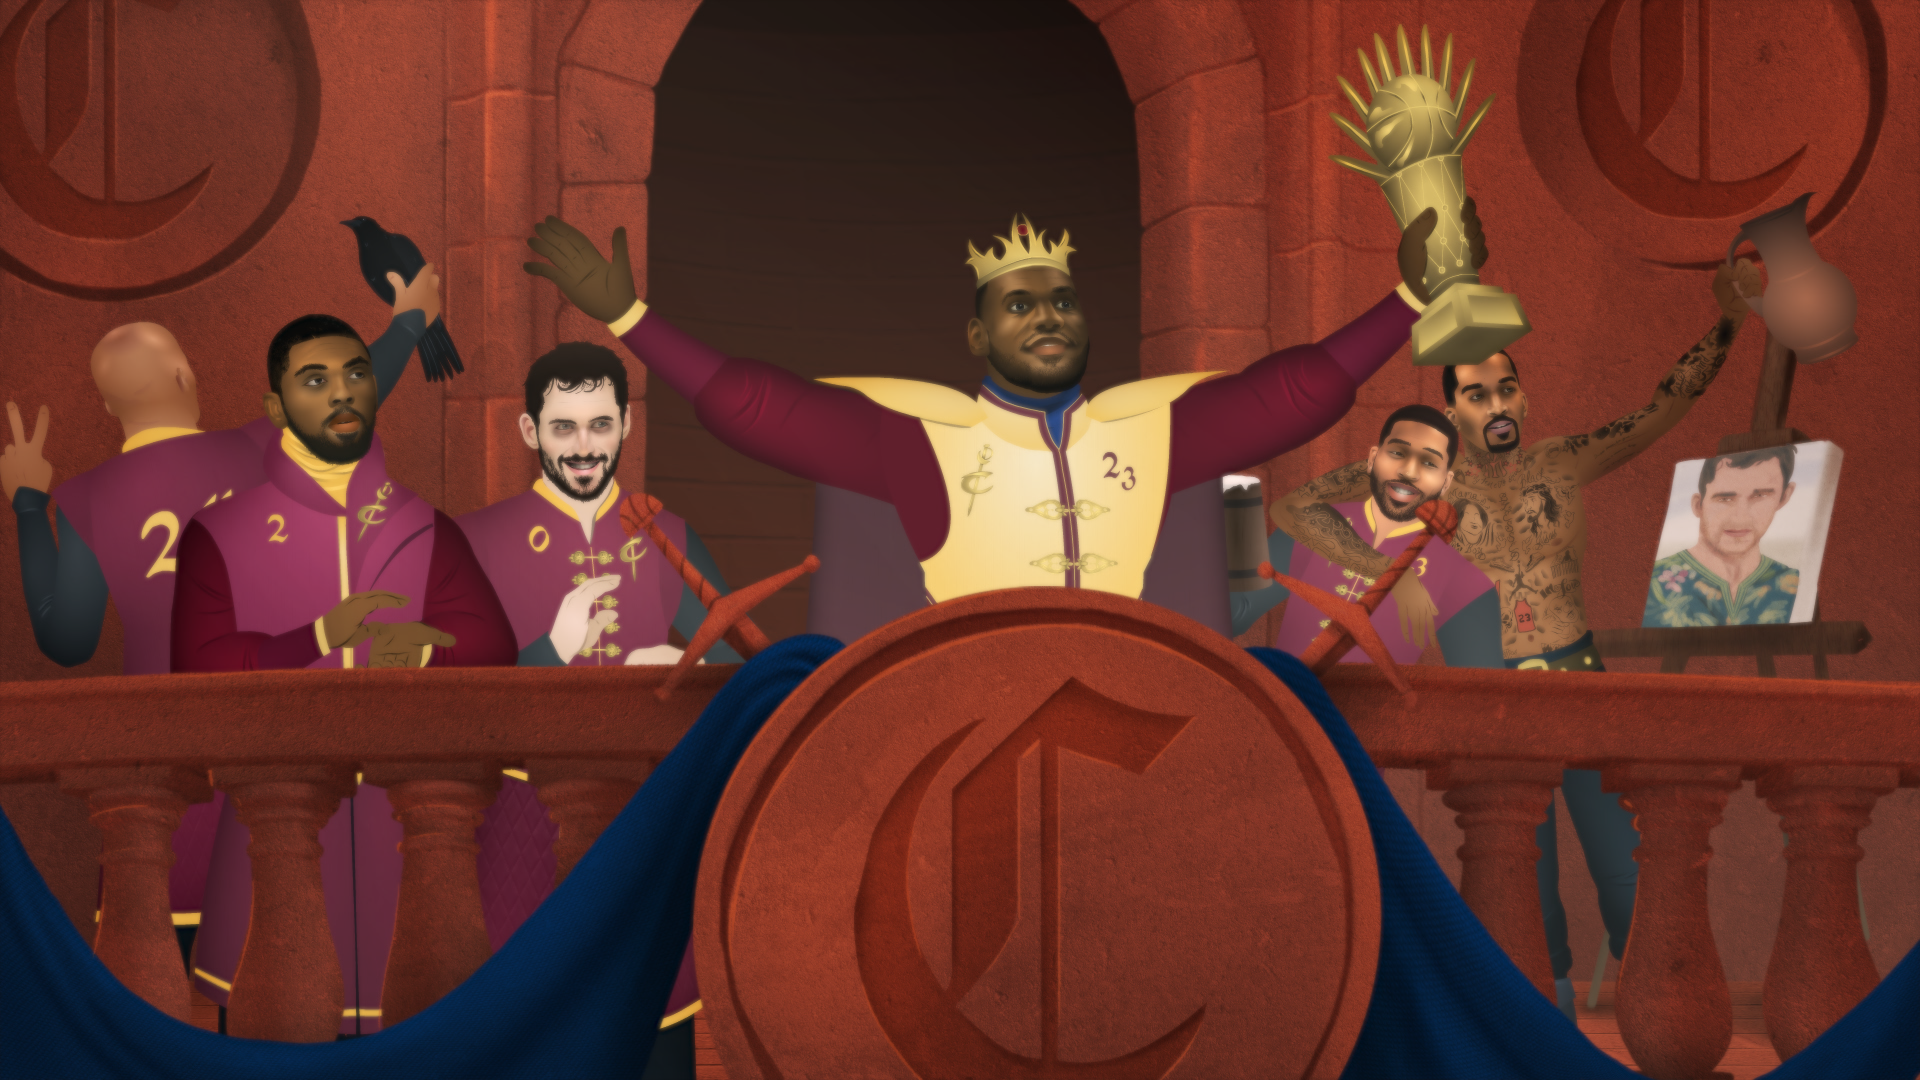 Image Media for Game of Zones